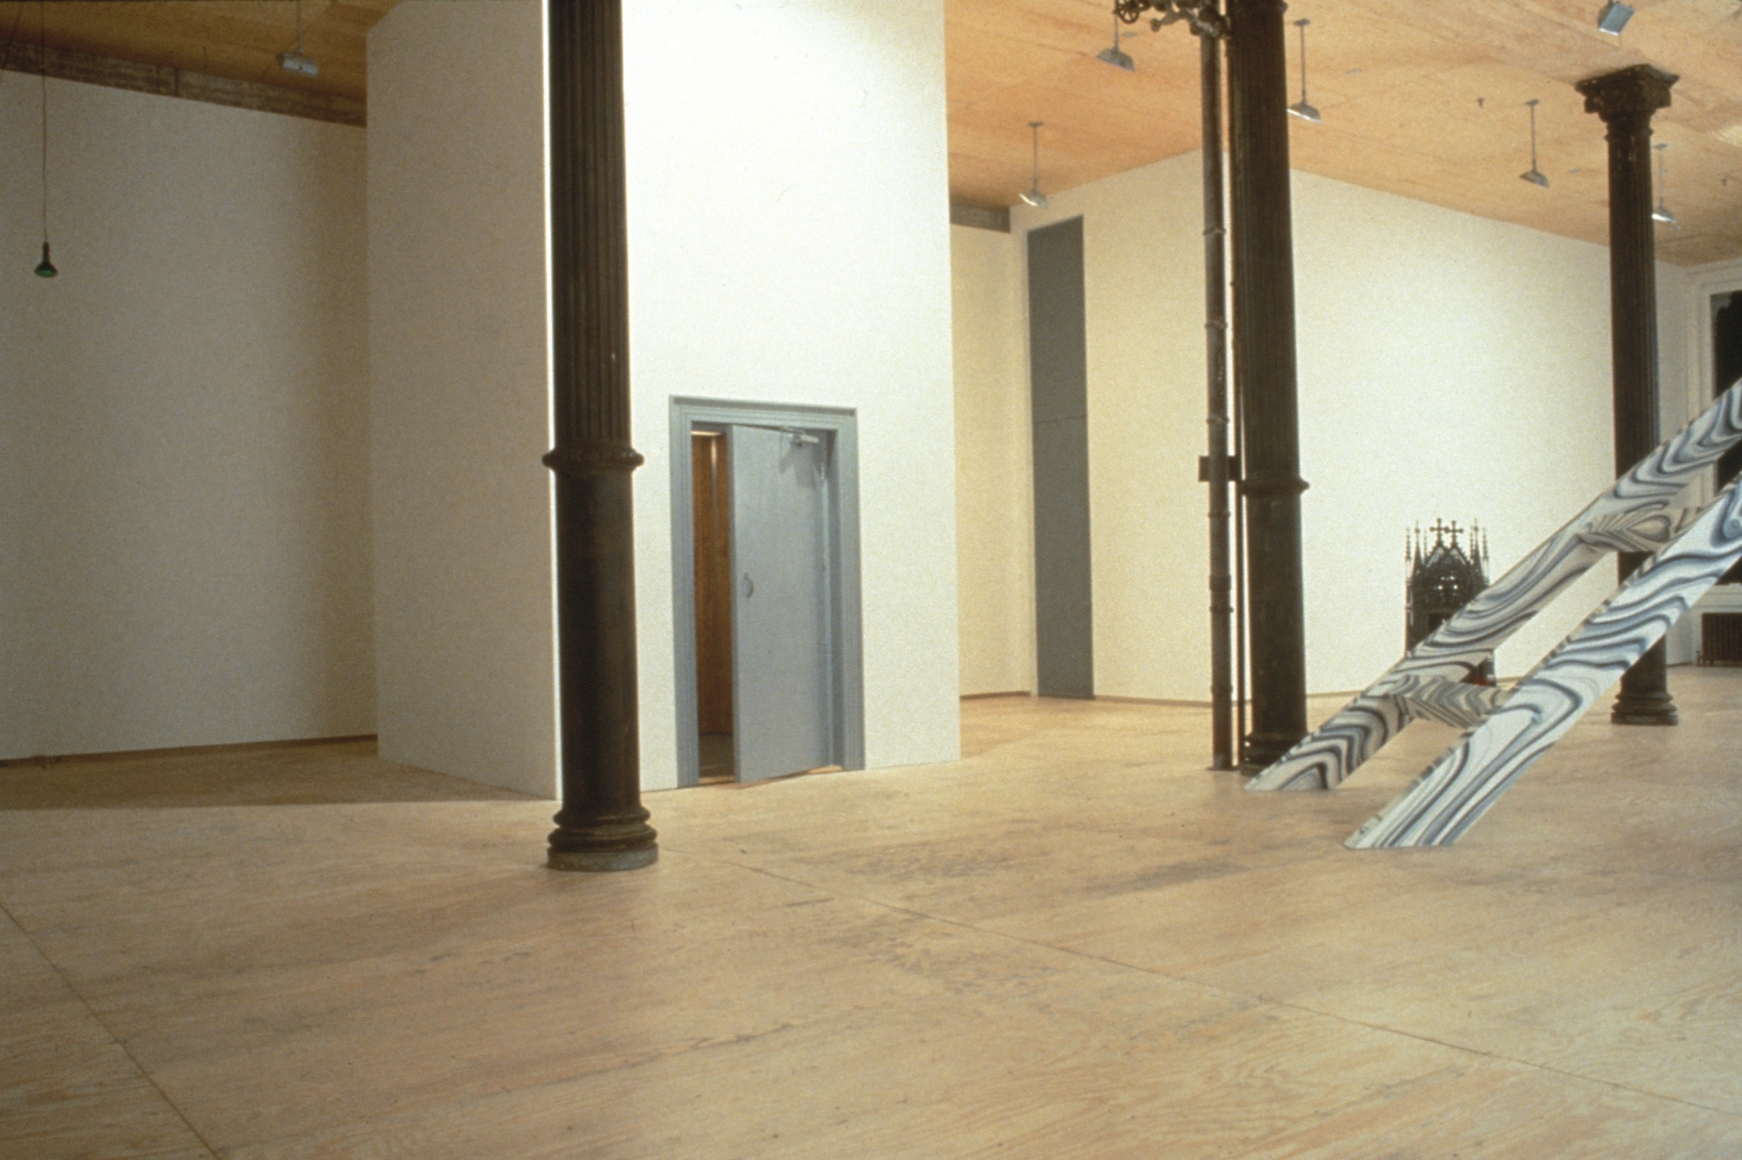 Installation view of Moving Structures at Lehmann Maupin in New York, view 1